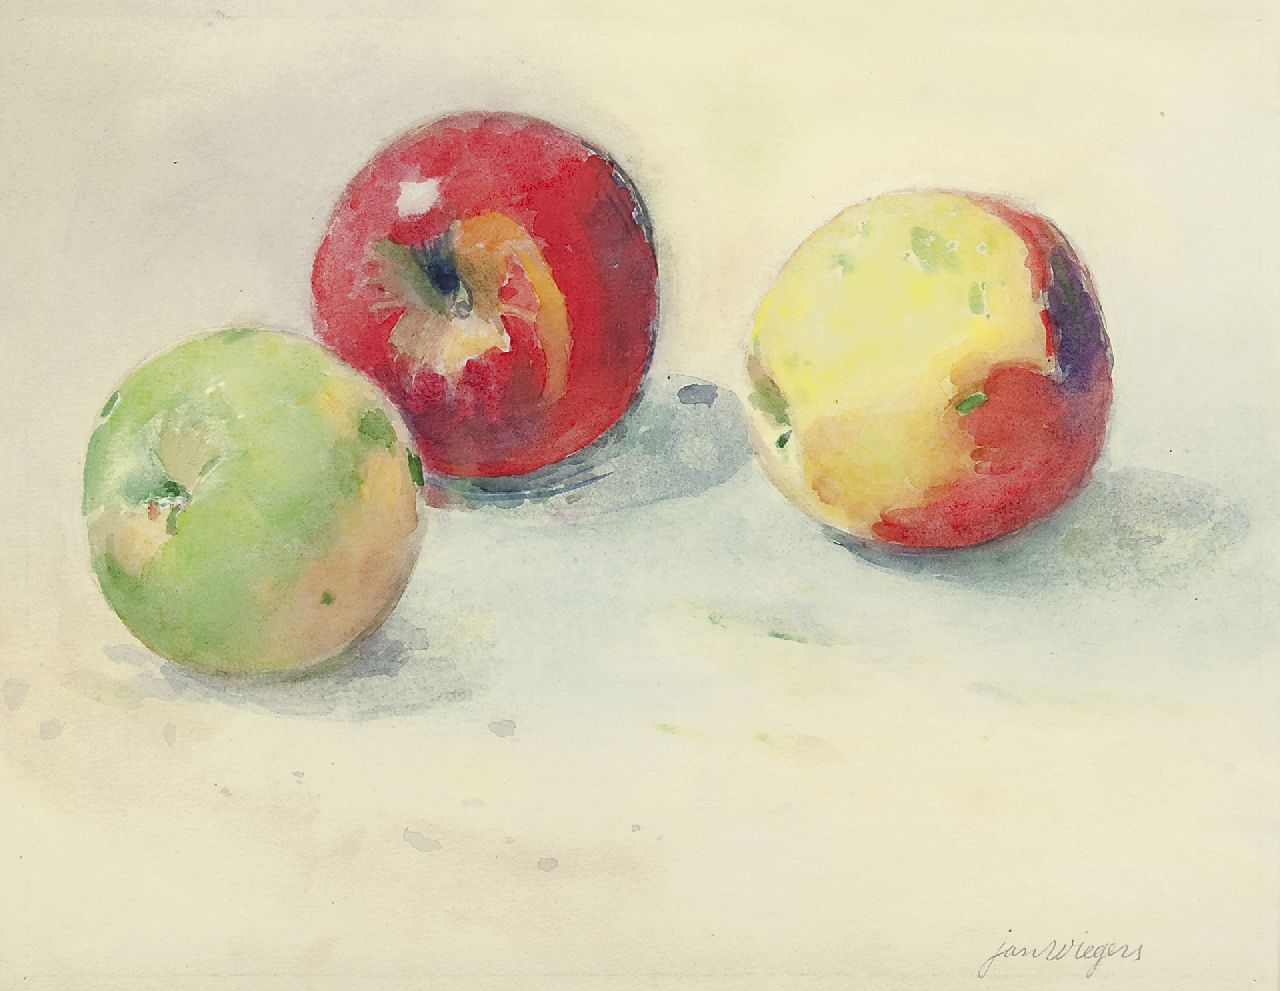 Wiegers J.  | Jan Wiegers | Watercolours and other works on paper offered for sale | A still life with apples, watercolour on paper 21.8 x 27.5 cm, signed l.r.